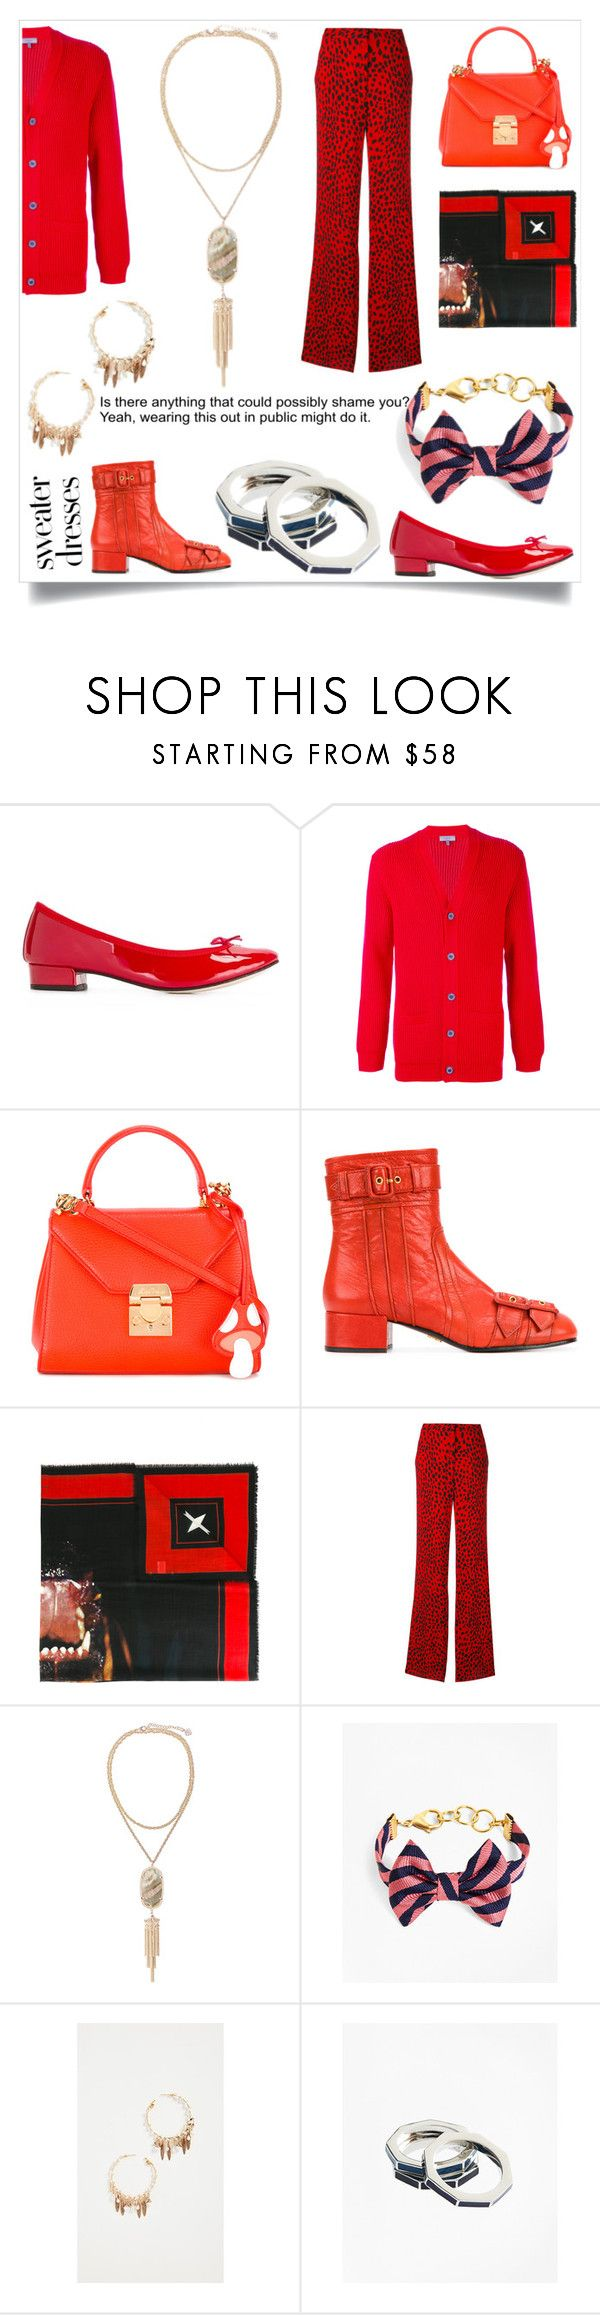 """Be your own style"" by emmamegan-5678 ❤ liked on Polyvore featuring Repetto, Lanvin, Mark Cross, Prada, Givenchy, Roberto Cavalli, Kendra Scott, Brooks Brothers, Gas Bijoux and modern"